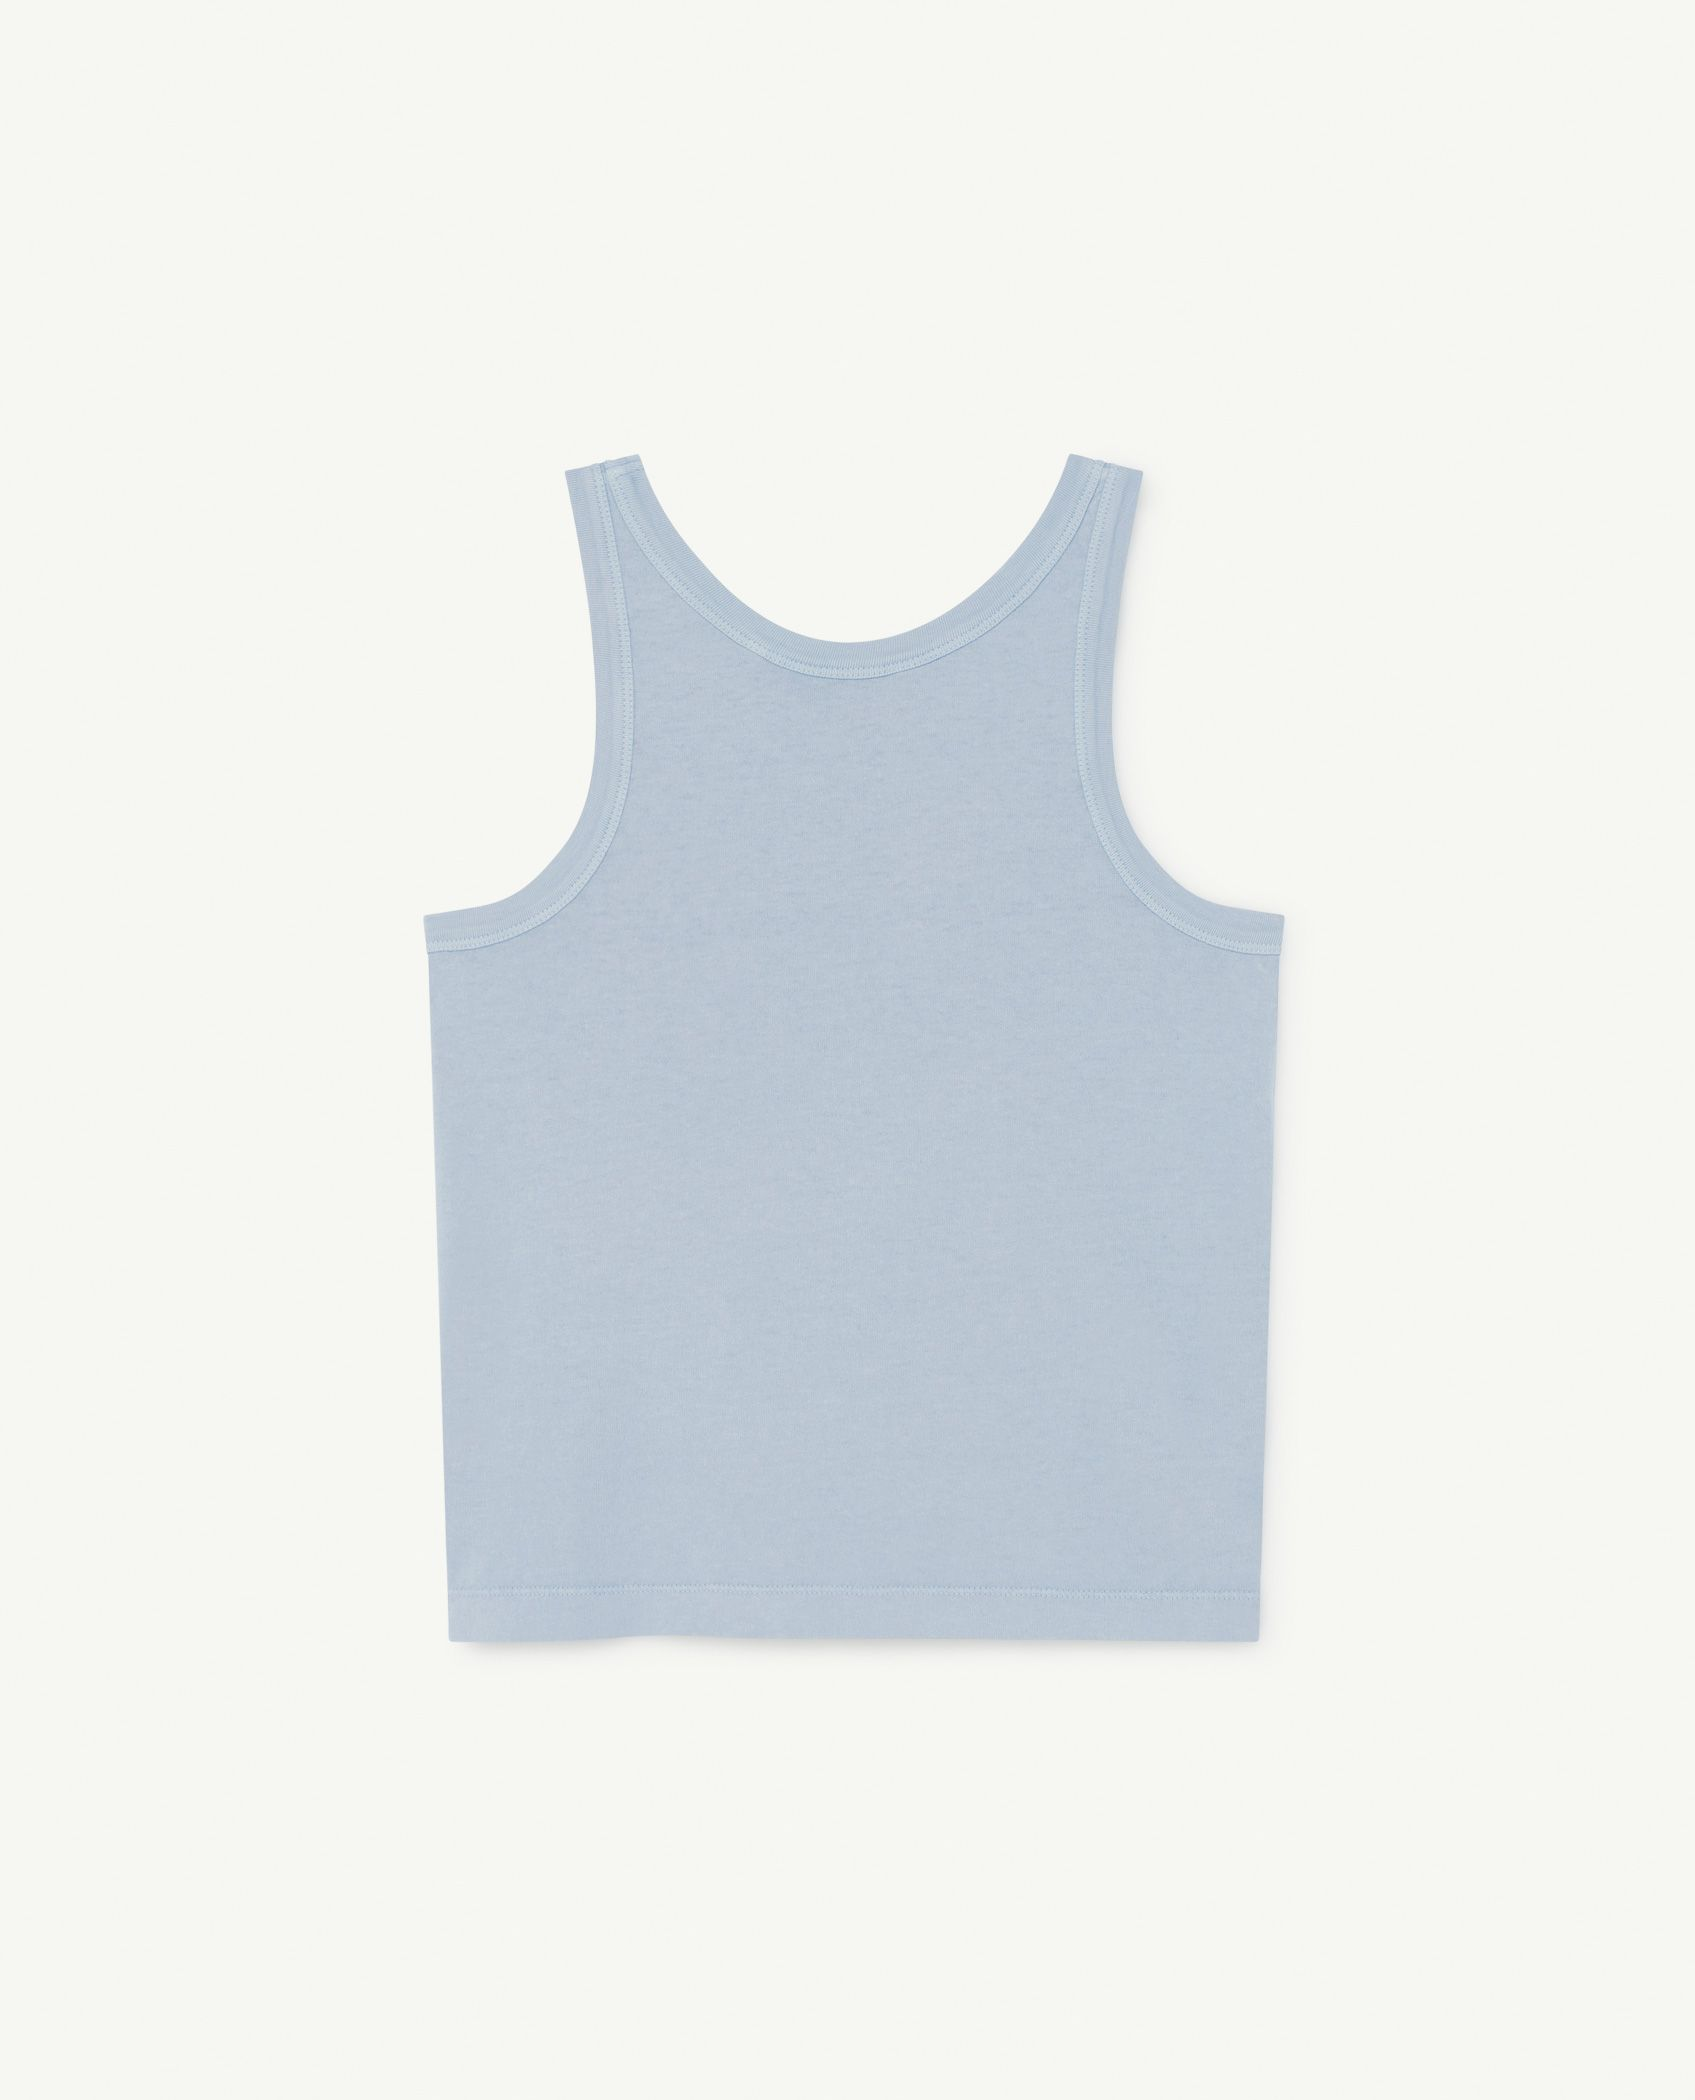 Pale Blue Frog Tank Top img-2